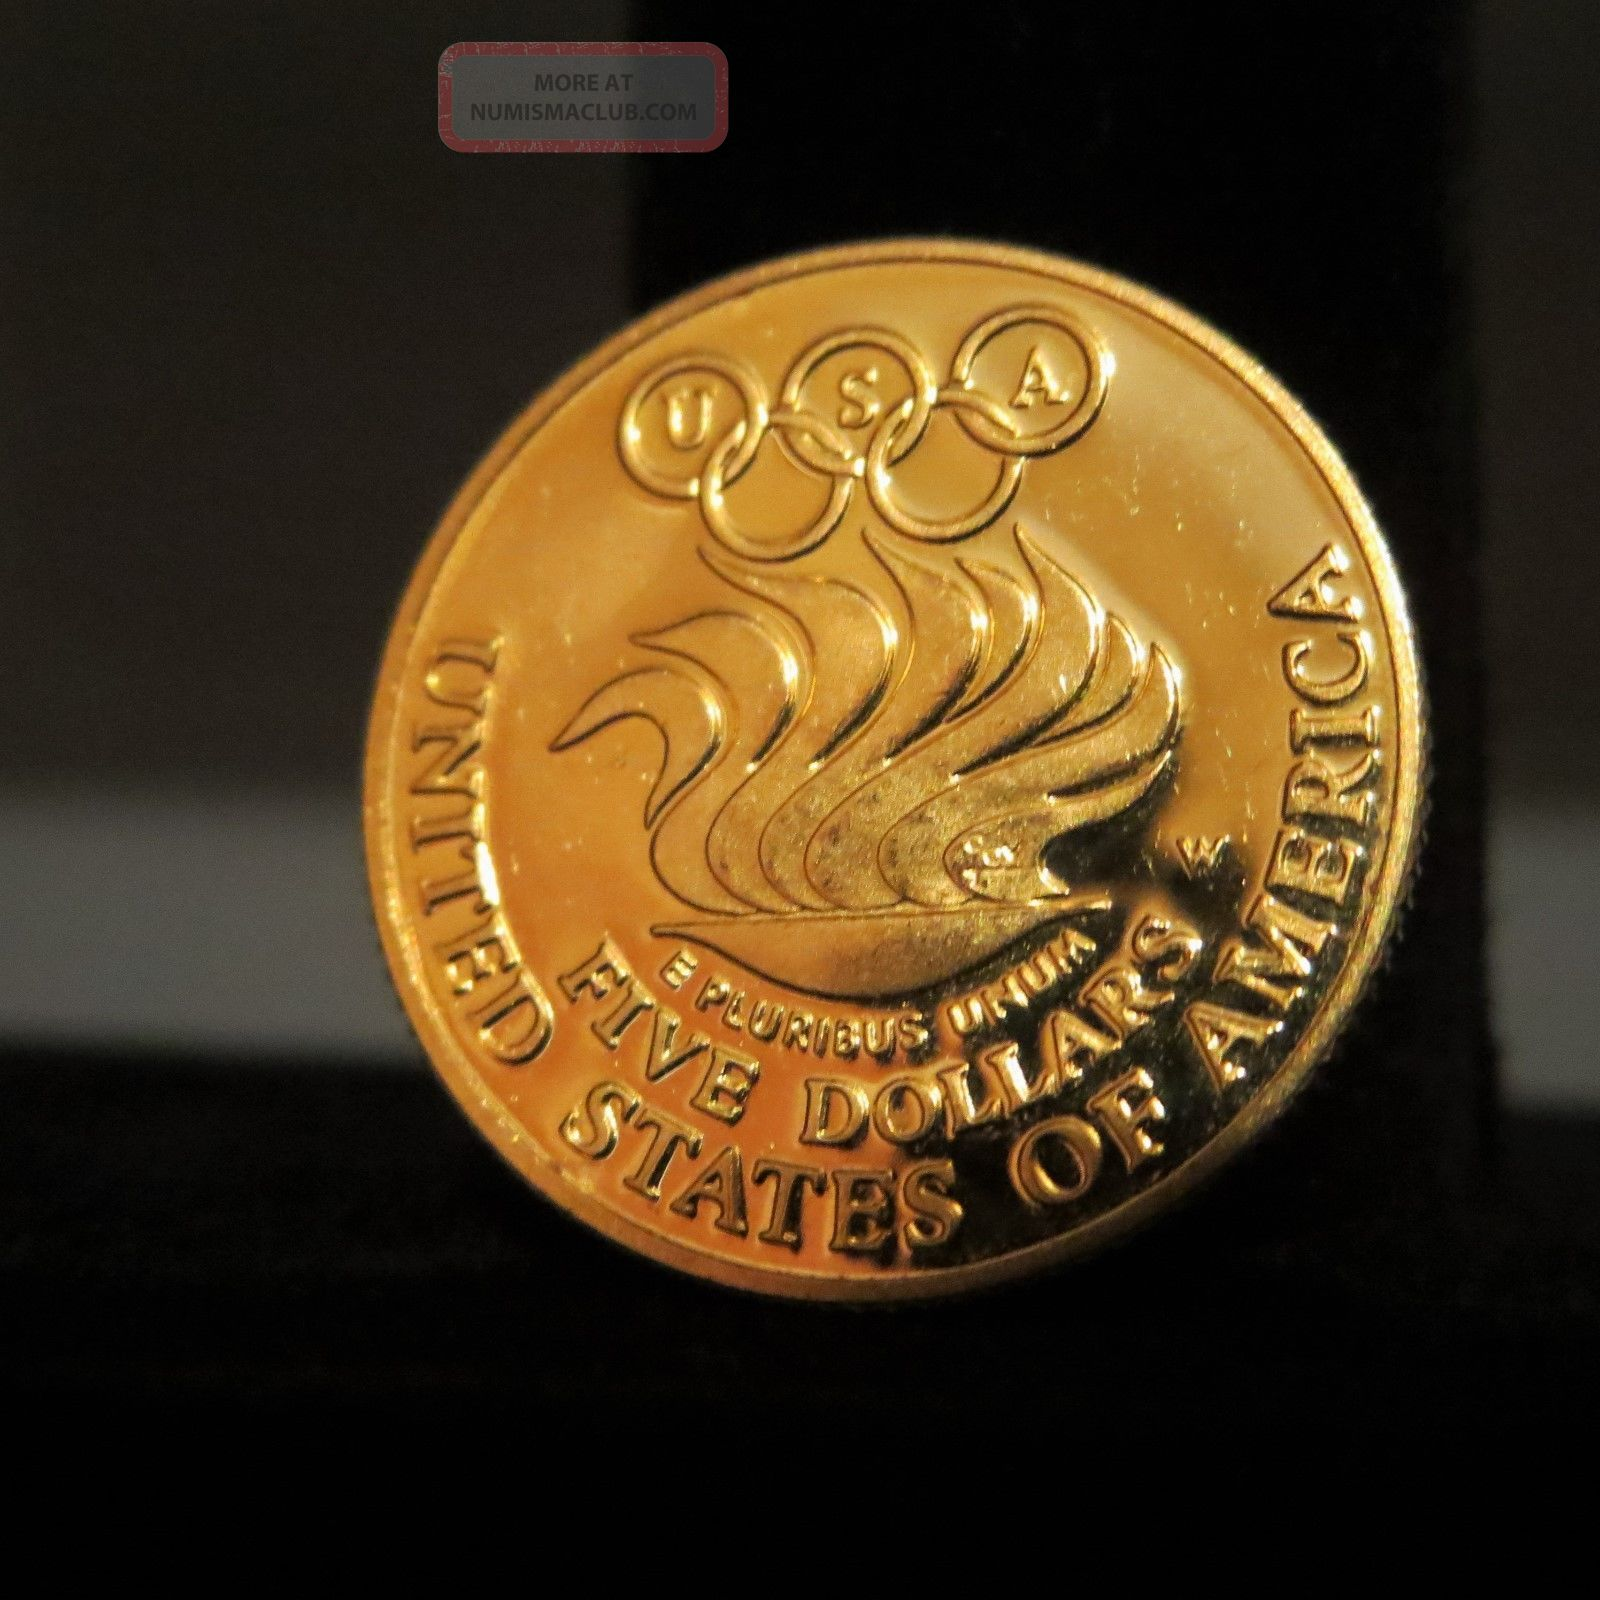 1988 W Olympic Commemorative 5 Dollar Gold Proof Coin